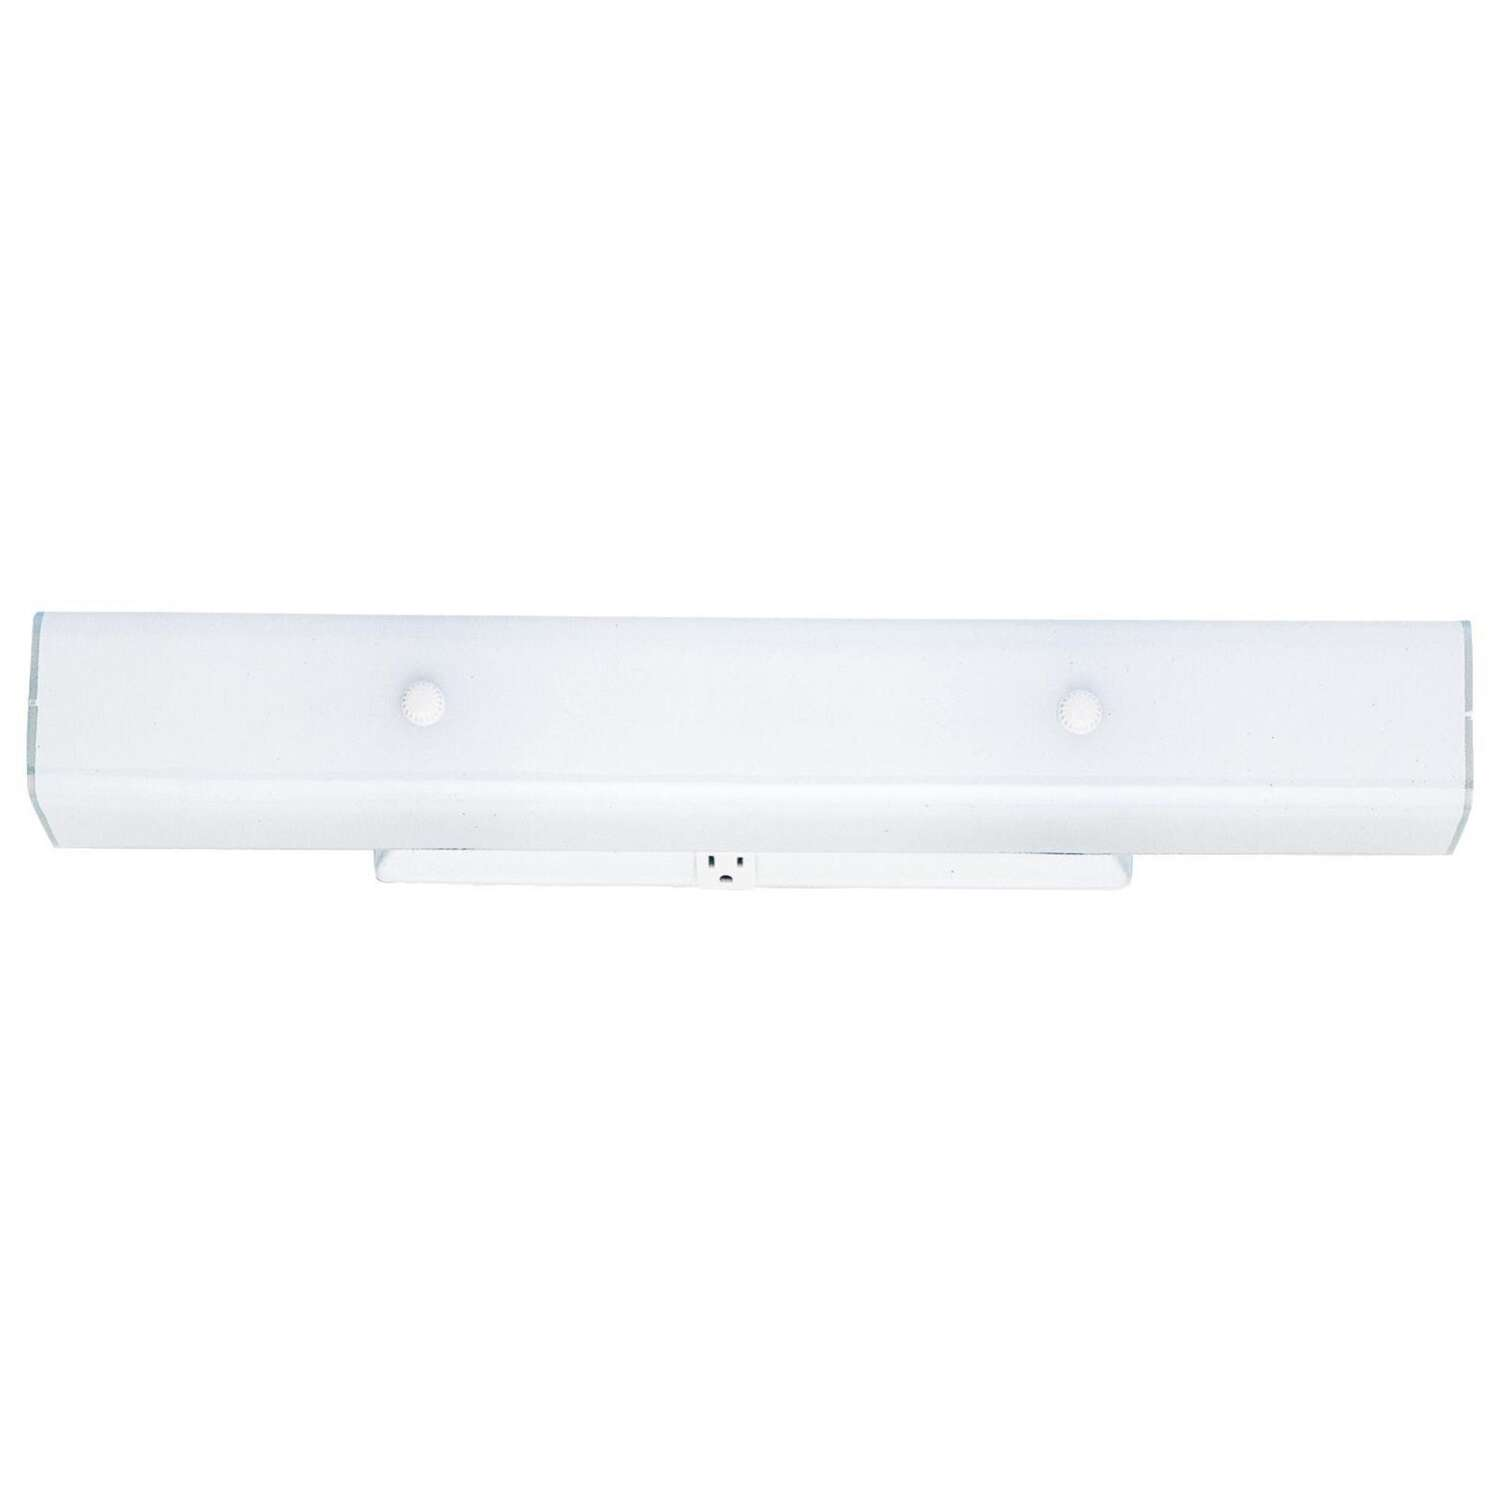 Westinghouse  White  2 lights Incandescent  Bathroom Channel Fixture  Wall Mount